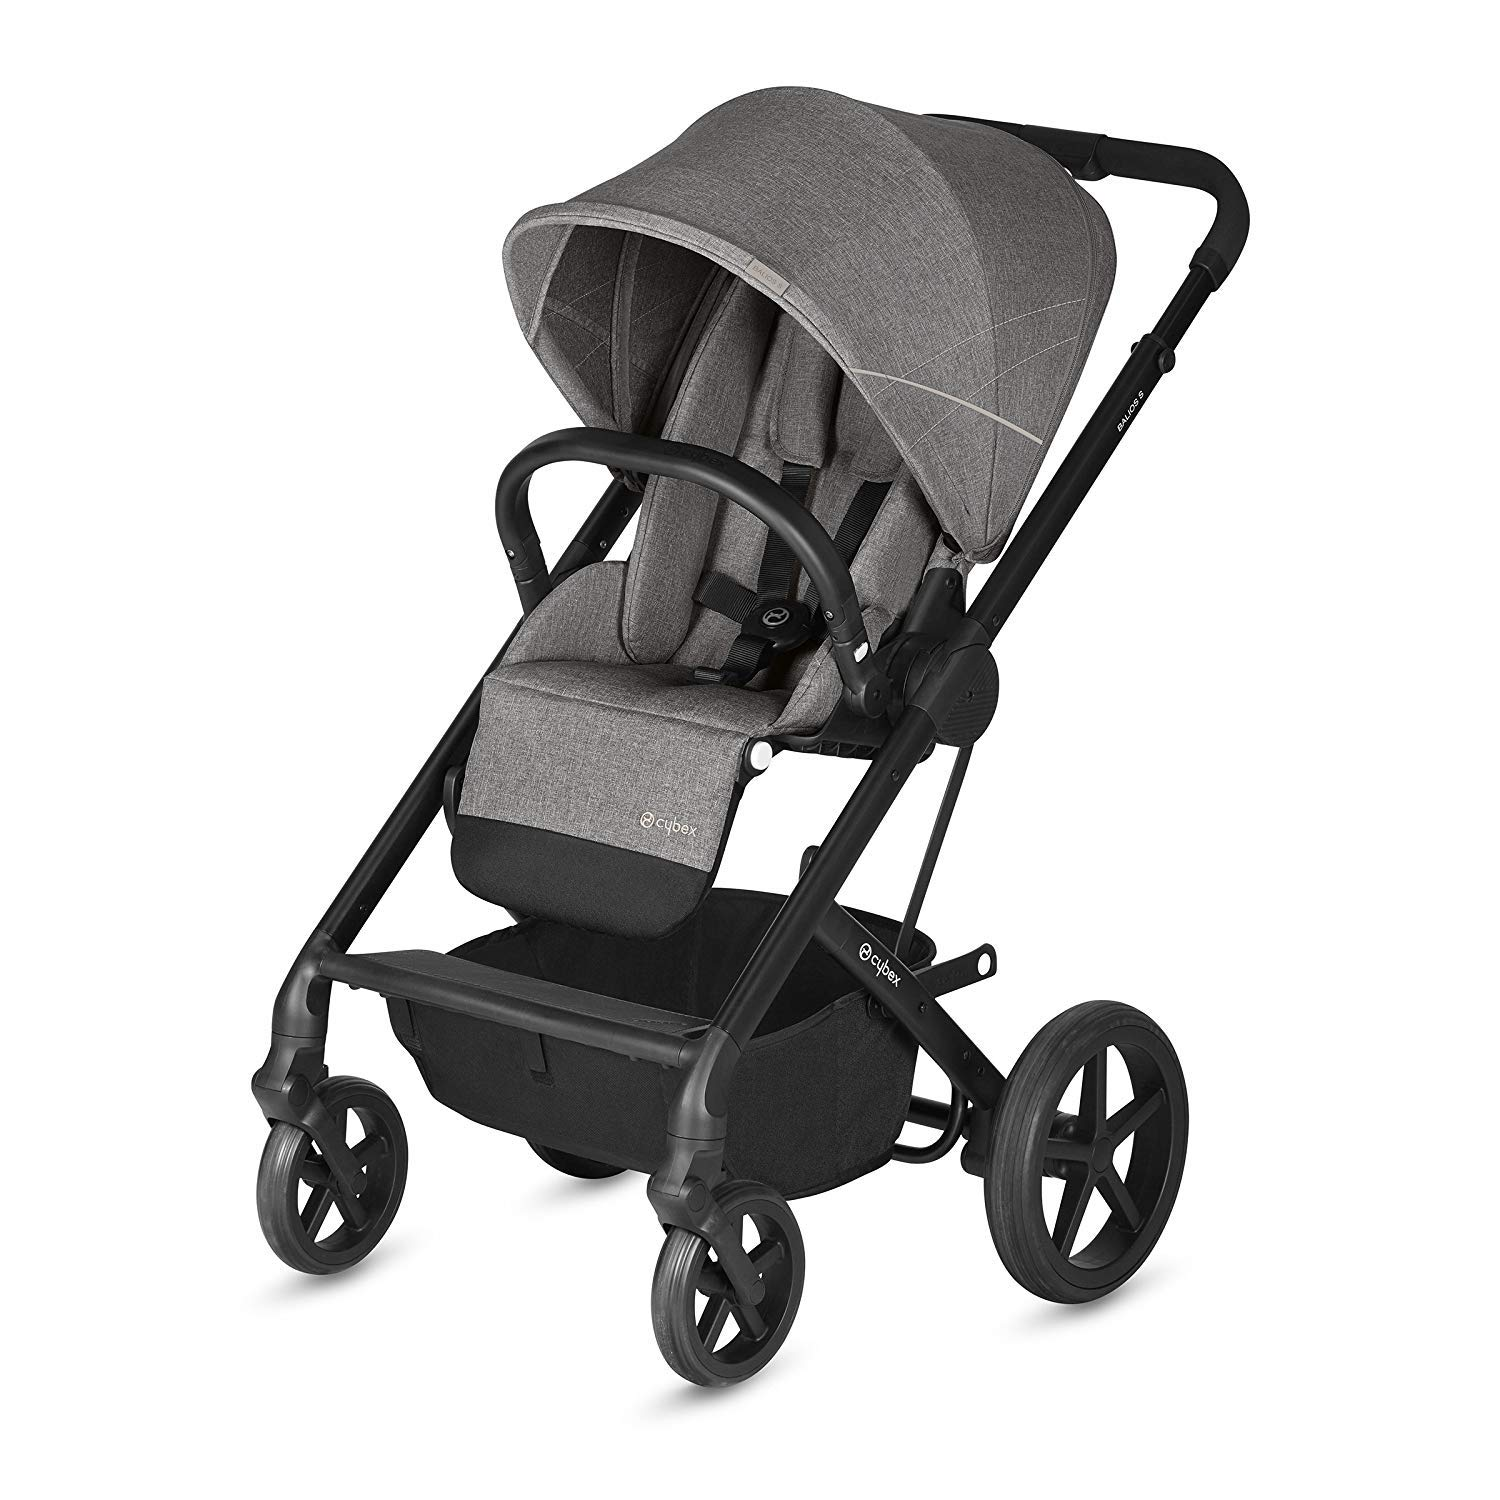 Cybex 2019 Balios S Denim Collection Stroller in Manhattan Grey